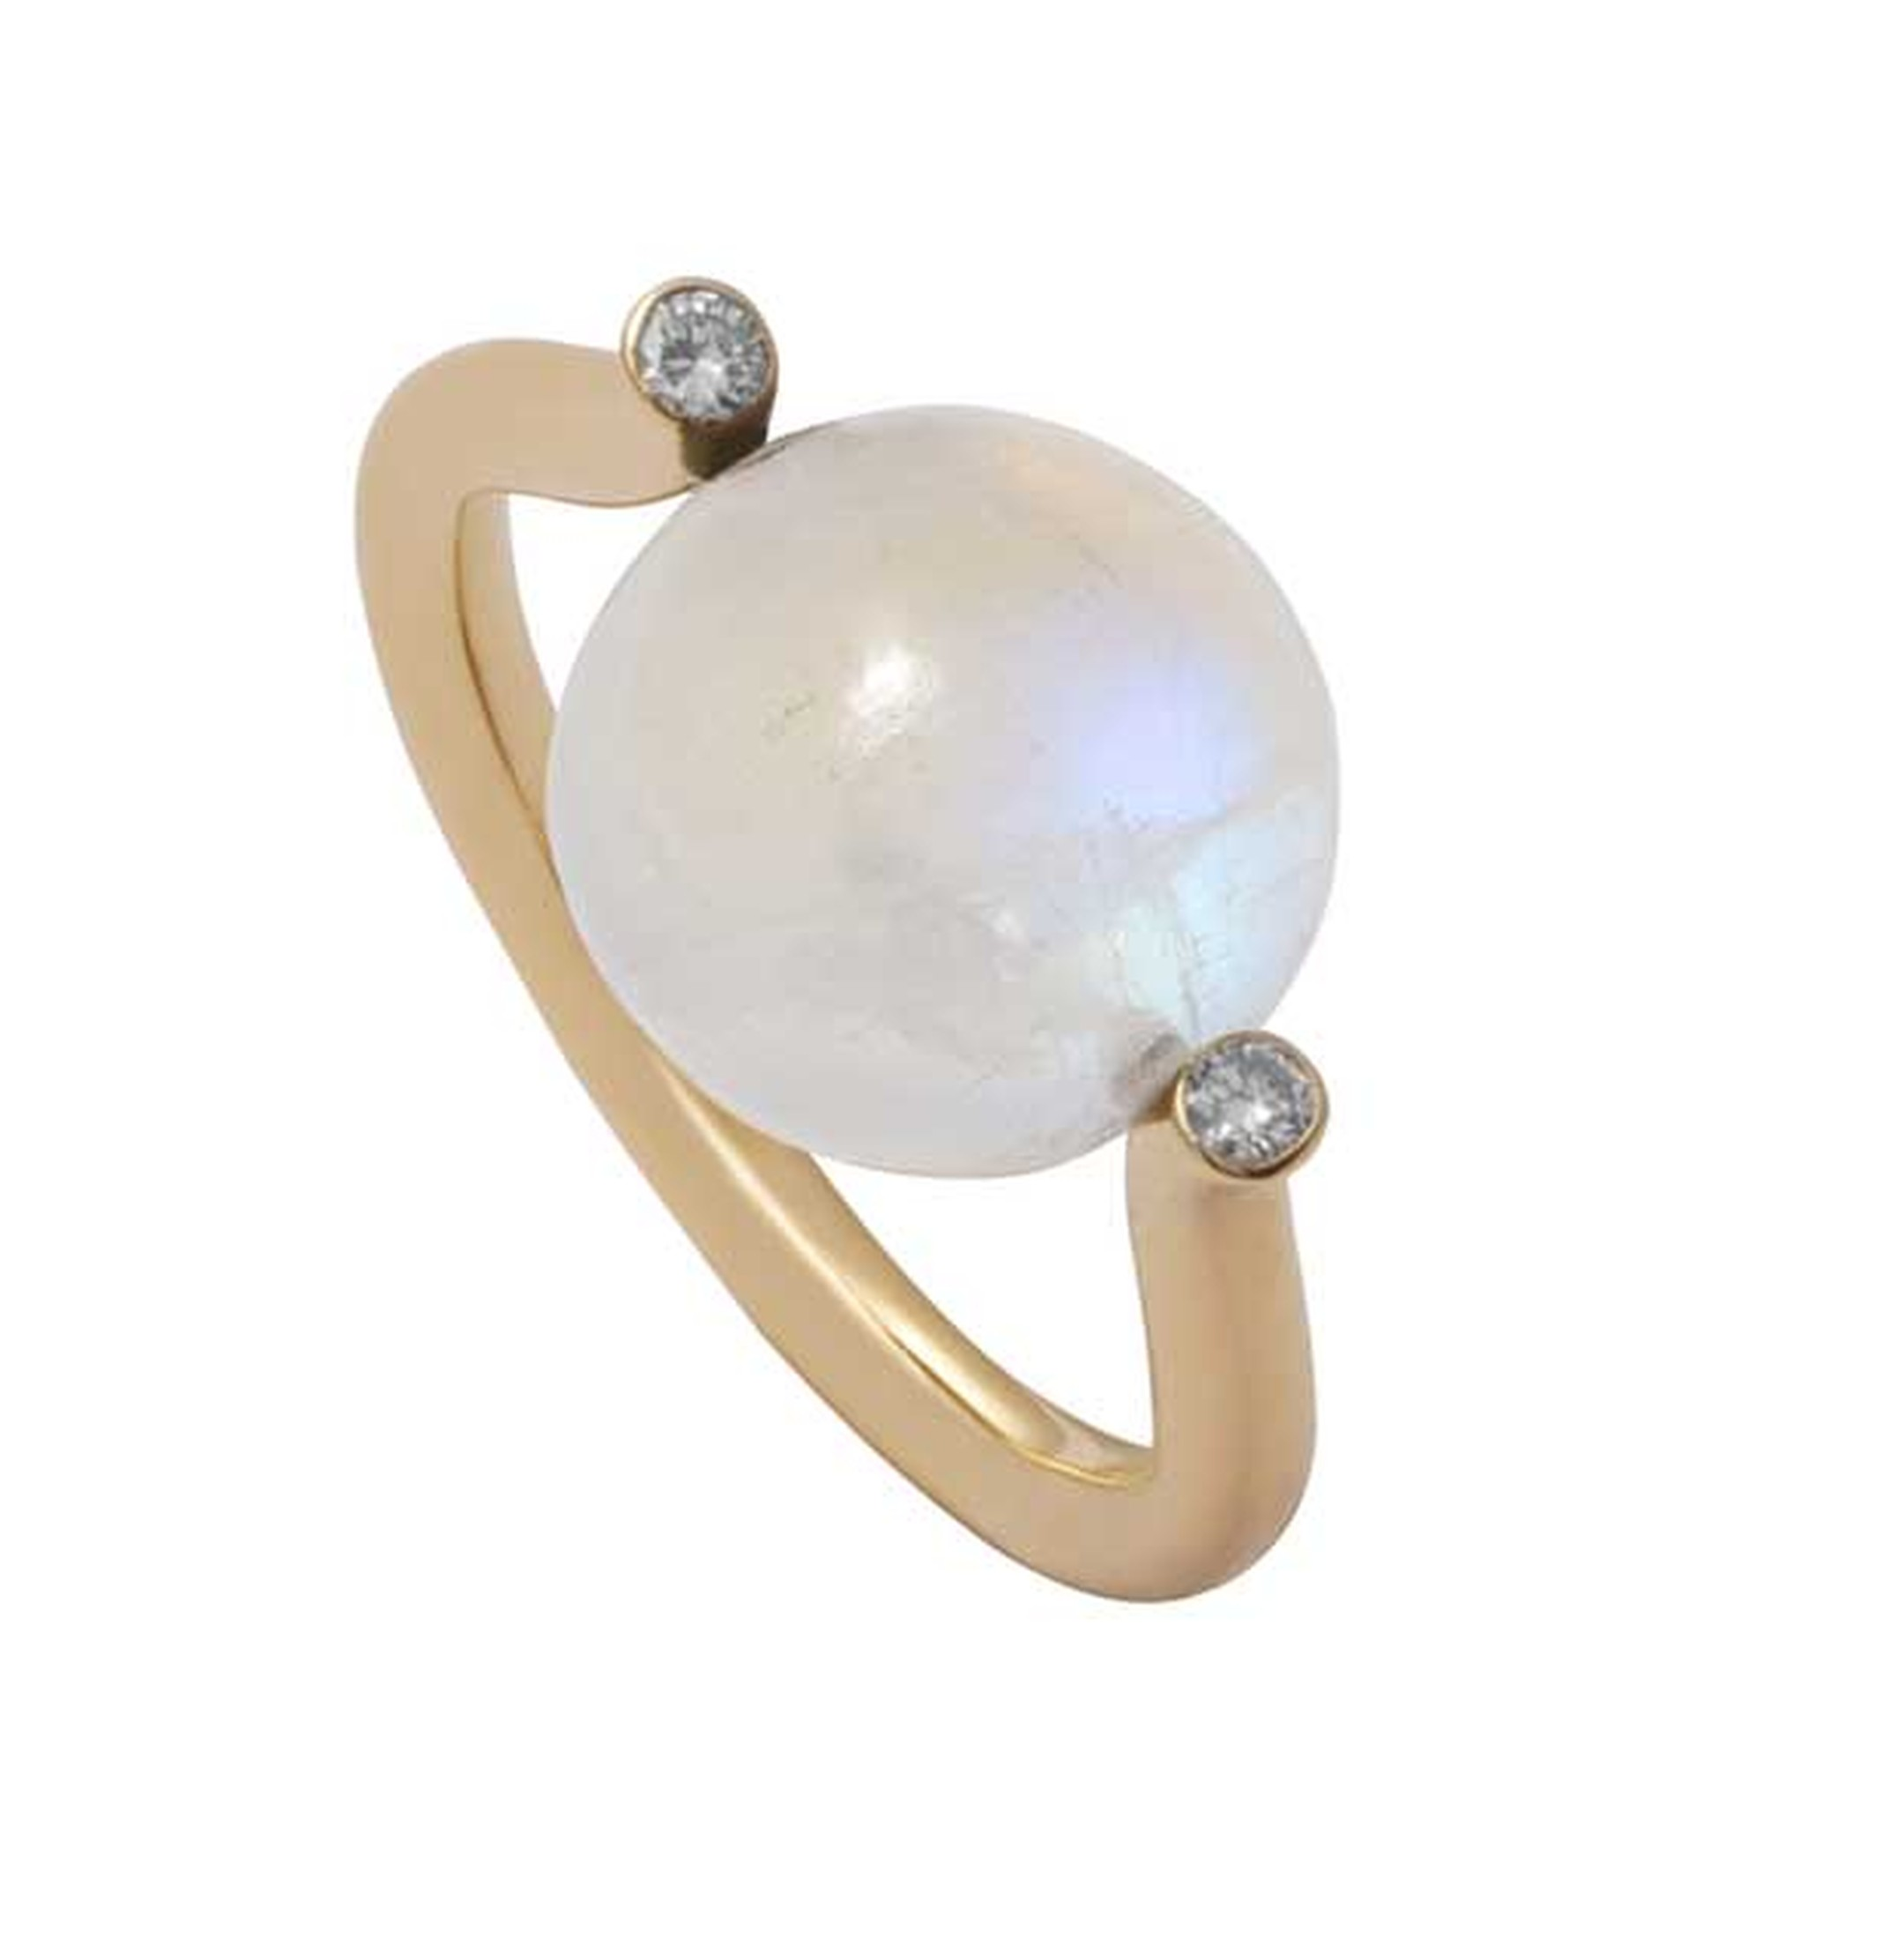 Noor Fares Celesta moonstone ring in yellow gold, from the new Tilsam collection.